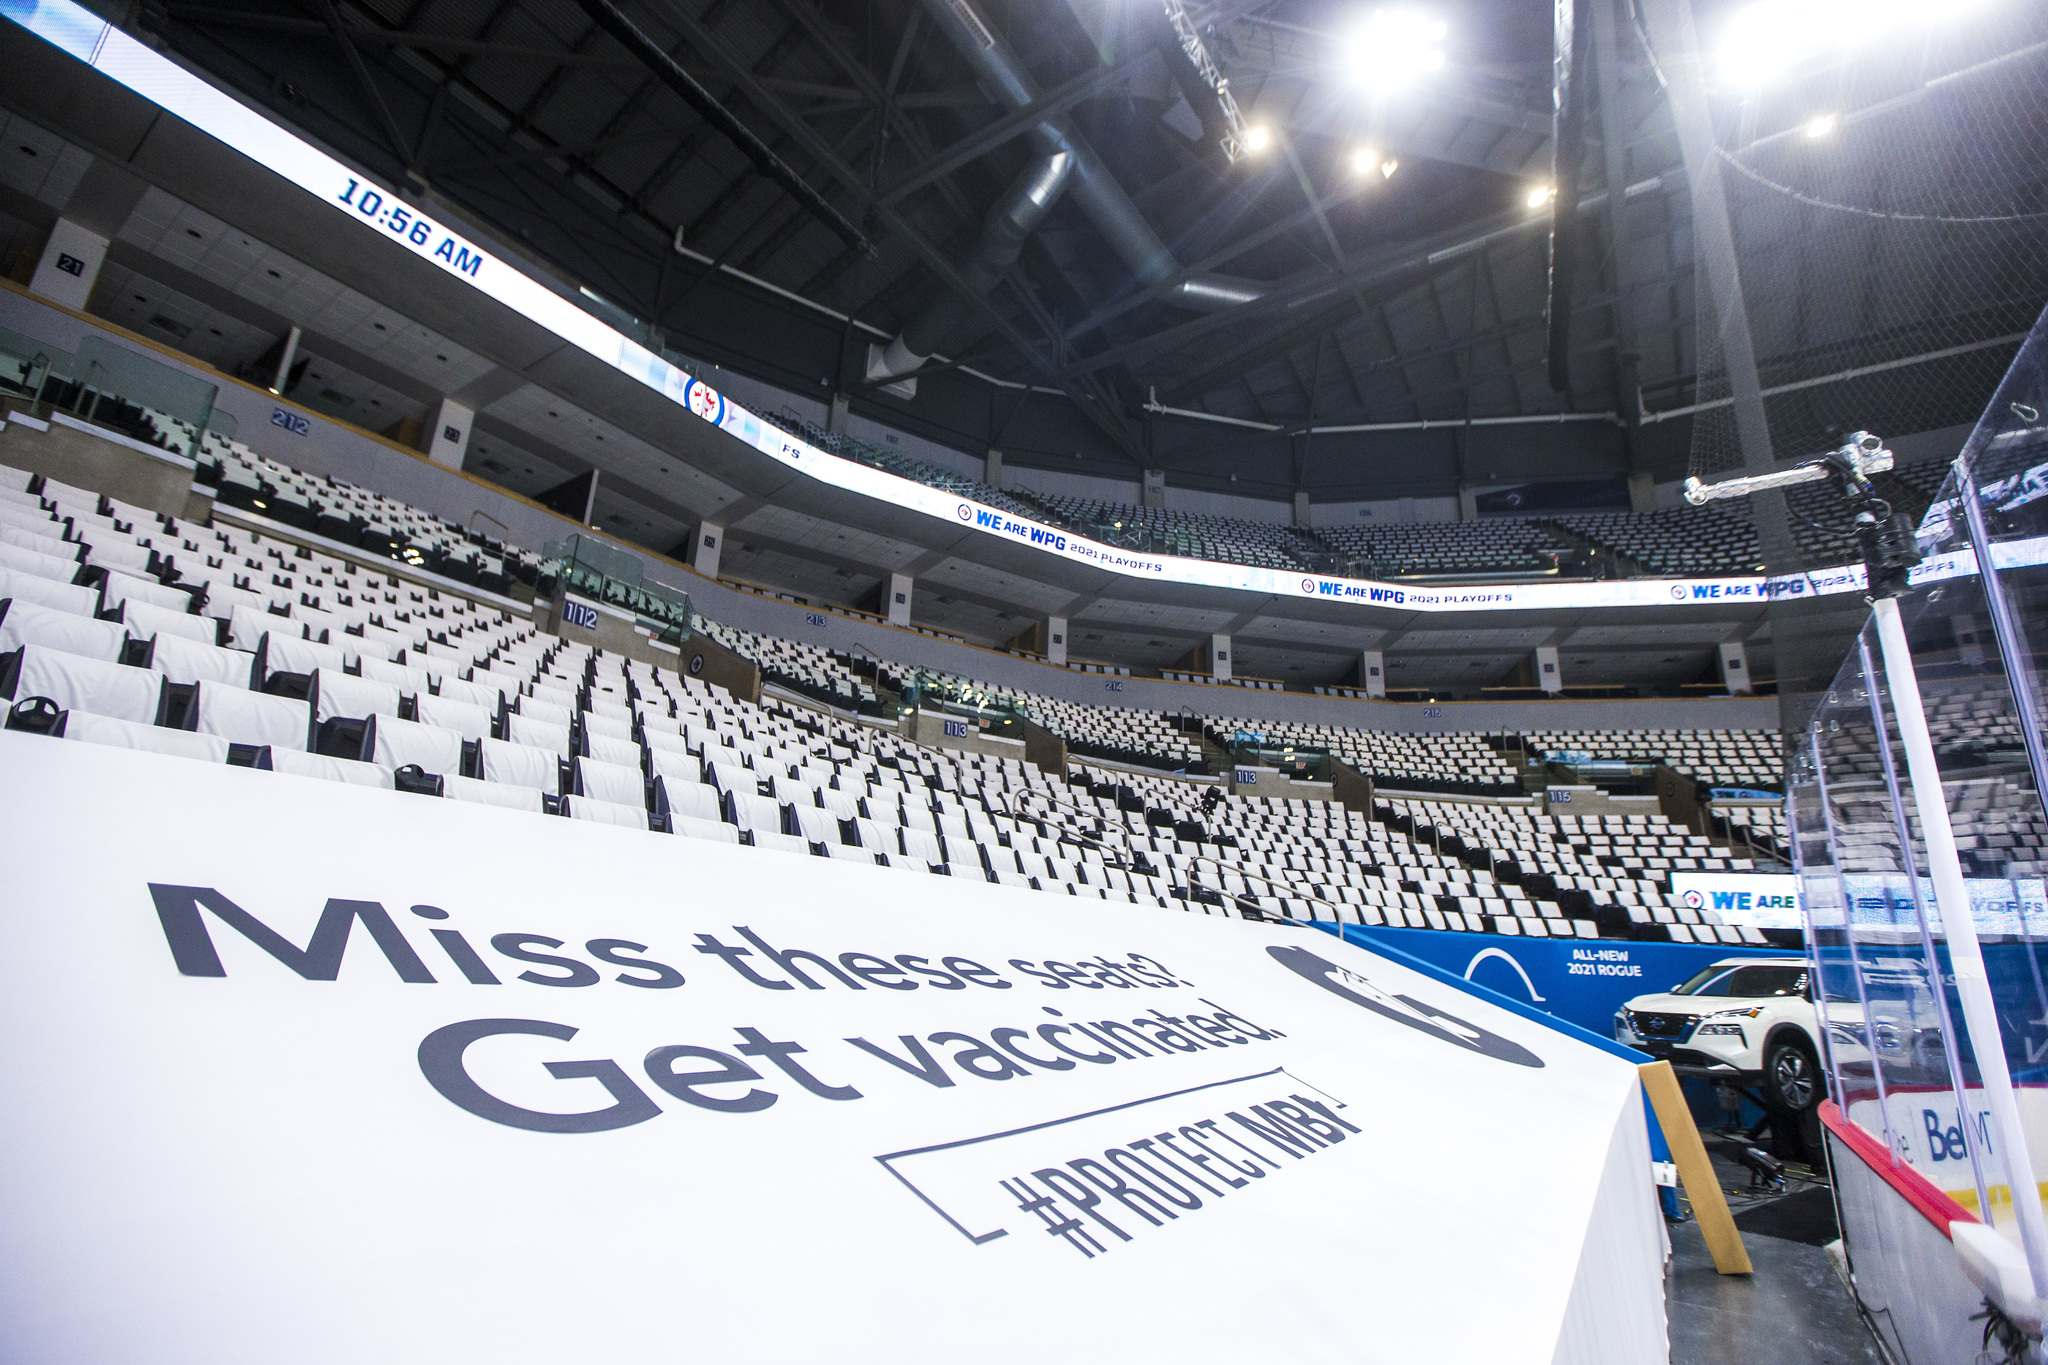 There will be actual people in the stands and not just seat covers at the arena on Wednesday. (Mikaela MacKenzie / Winnipeg Free Press)